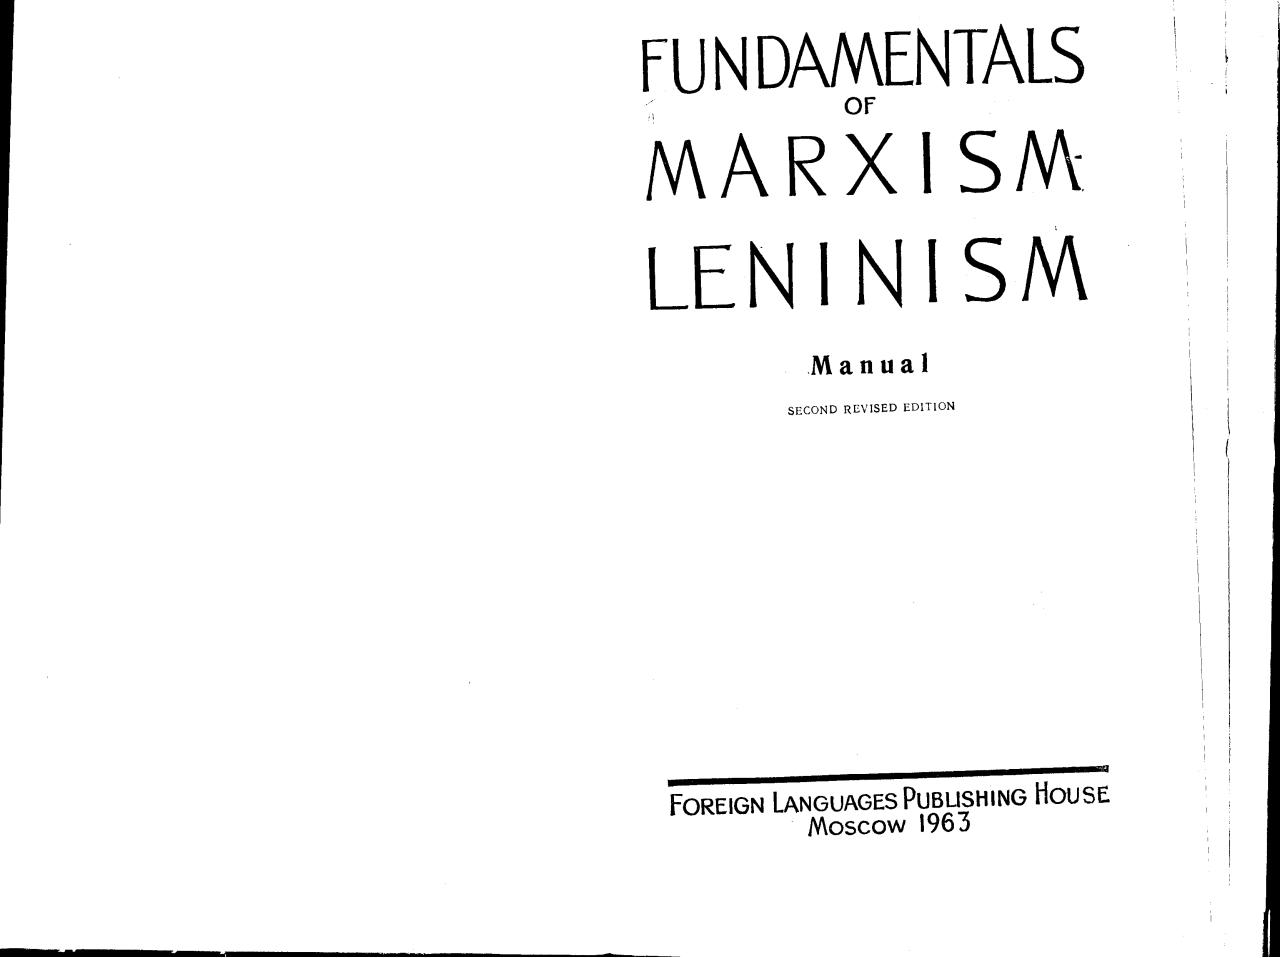 Fundamentals of marxism leninism manual